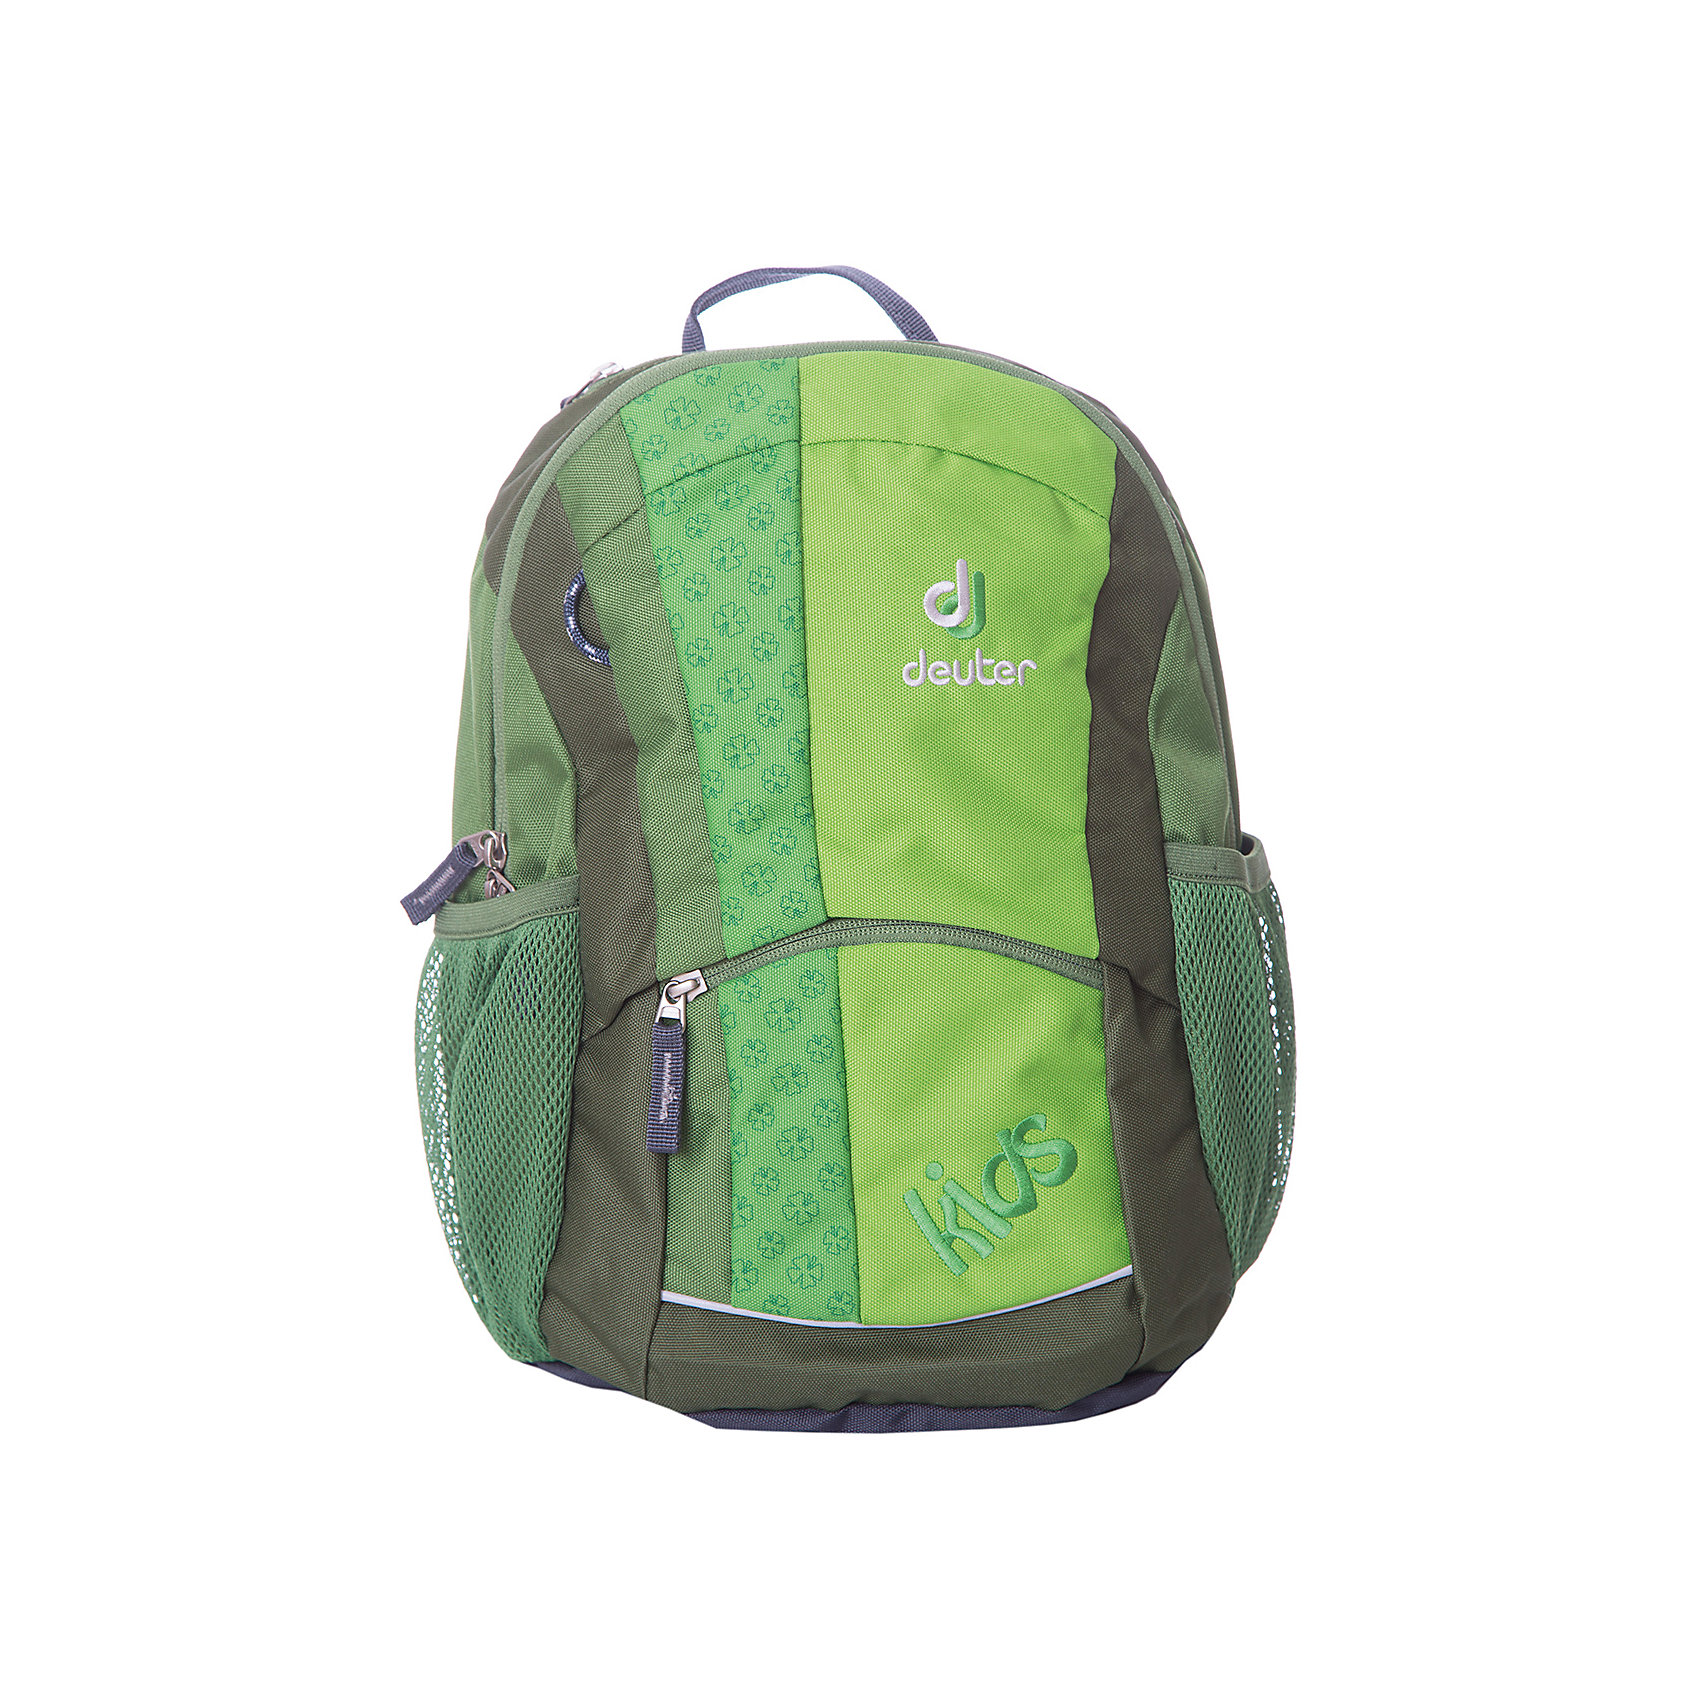 Deuter Школьный рюкзак Deuter, зеленый deuter giga blackberry dresscode